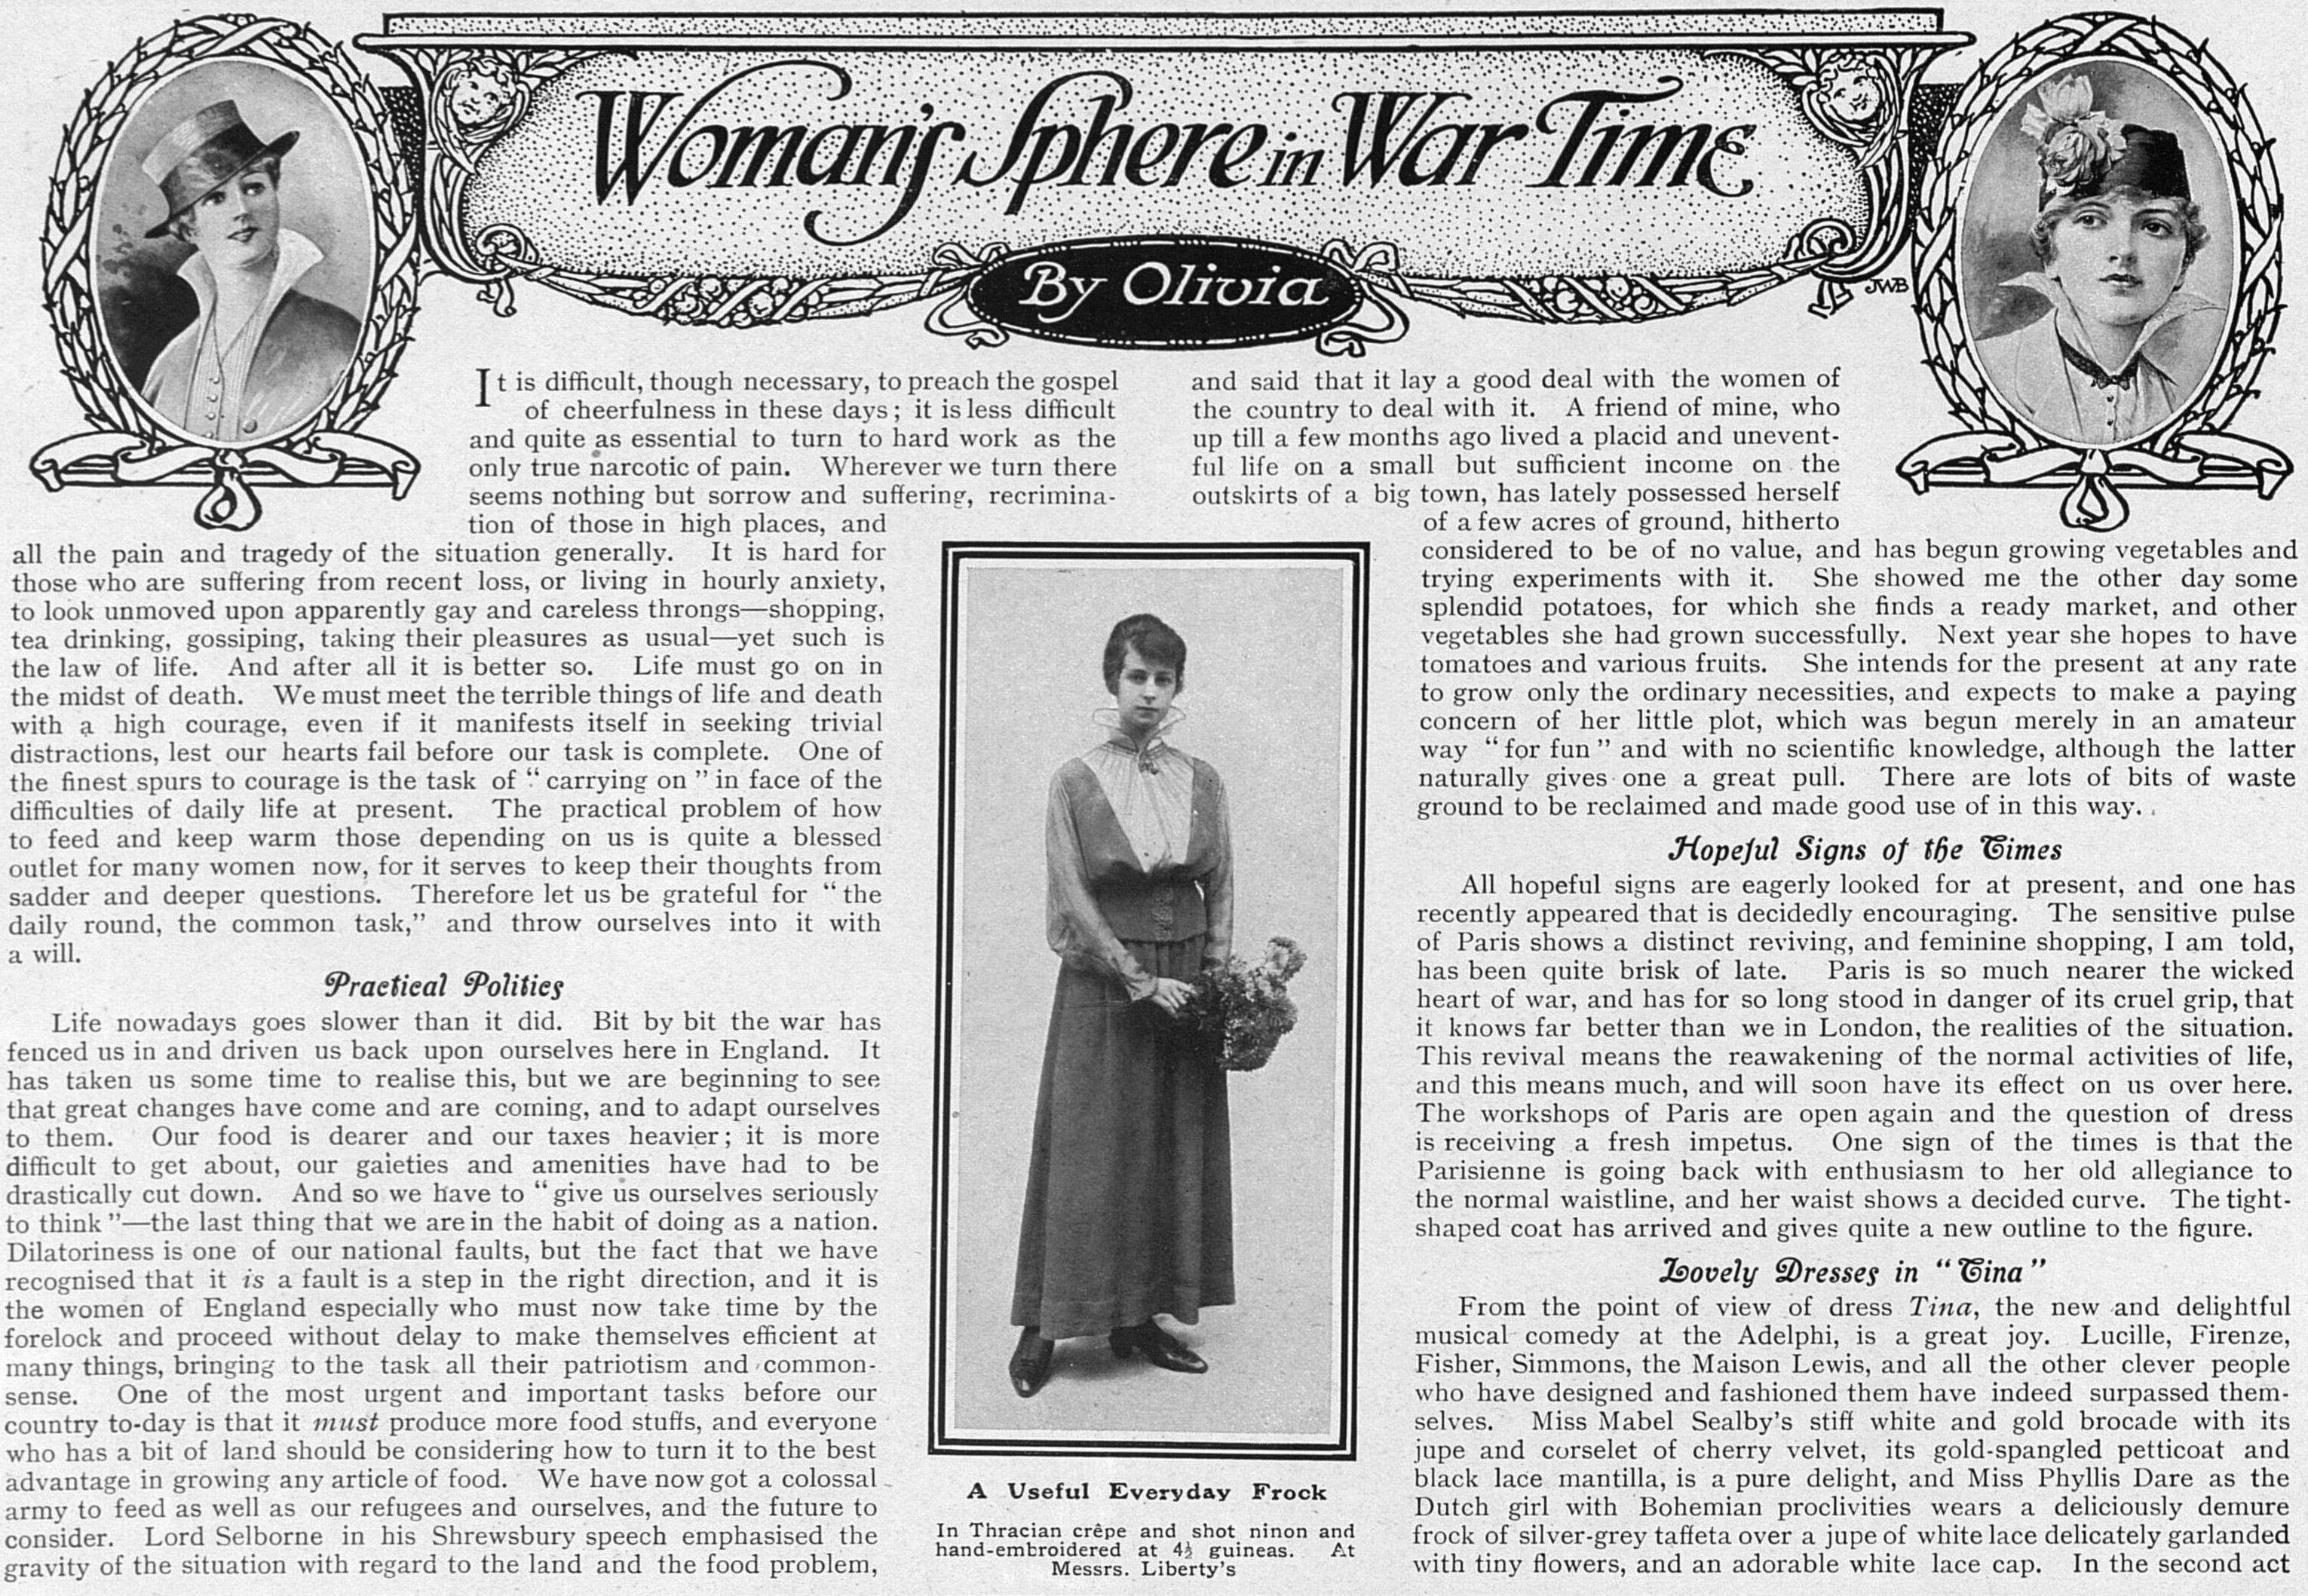 WomansSphereInWarTime_13Nov1915